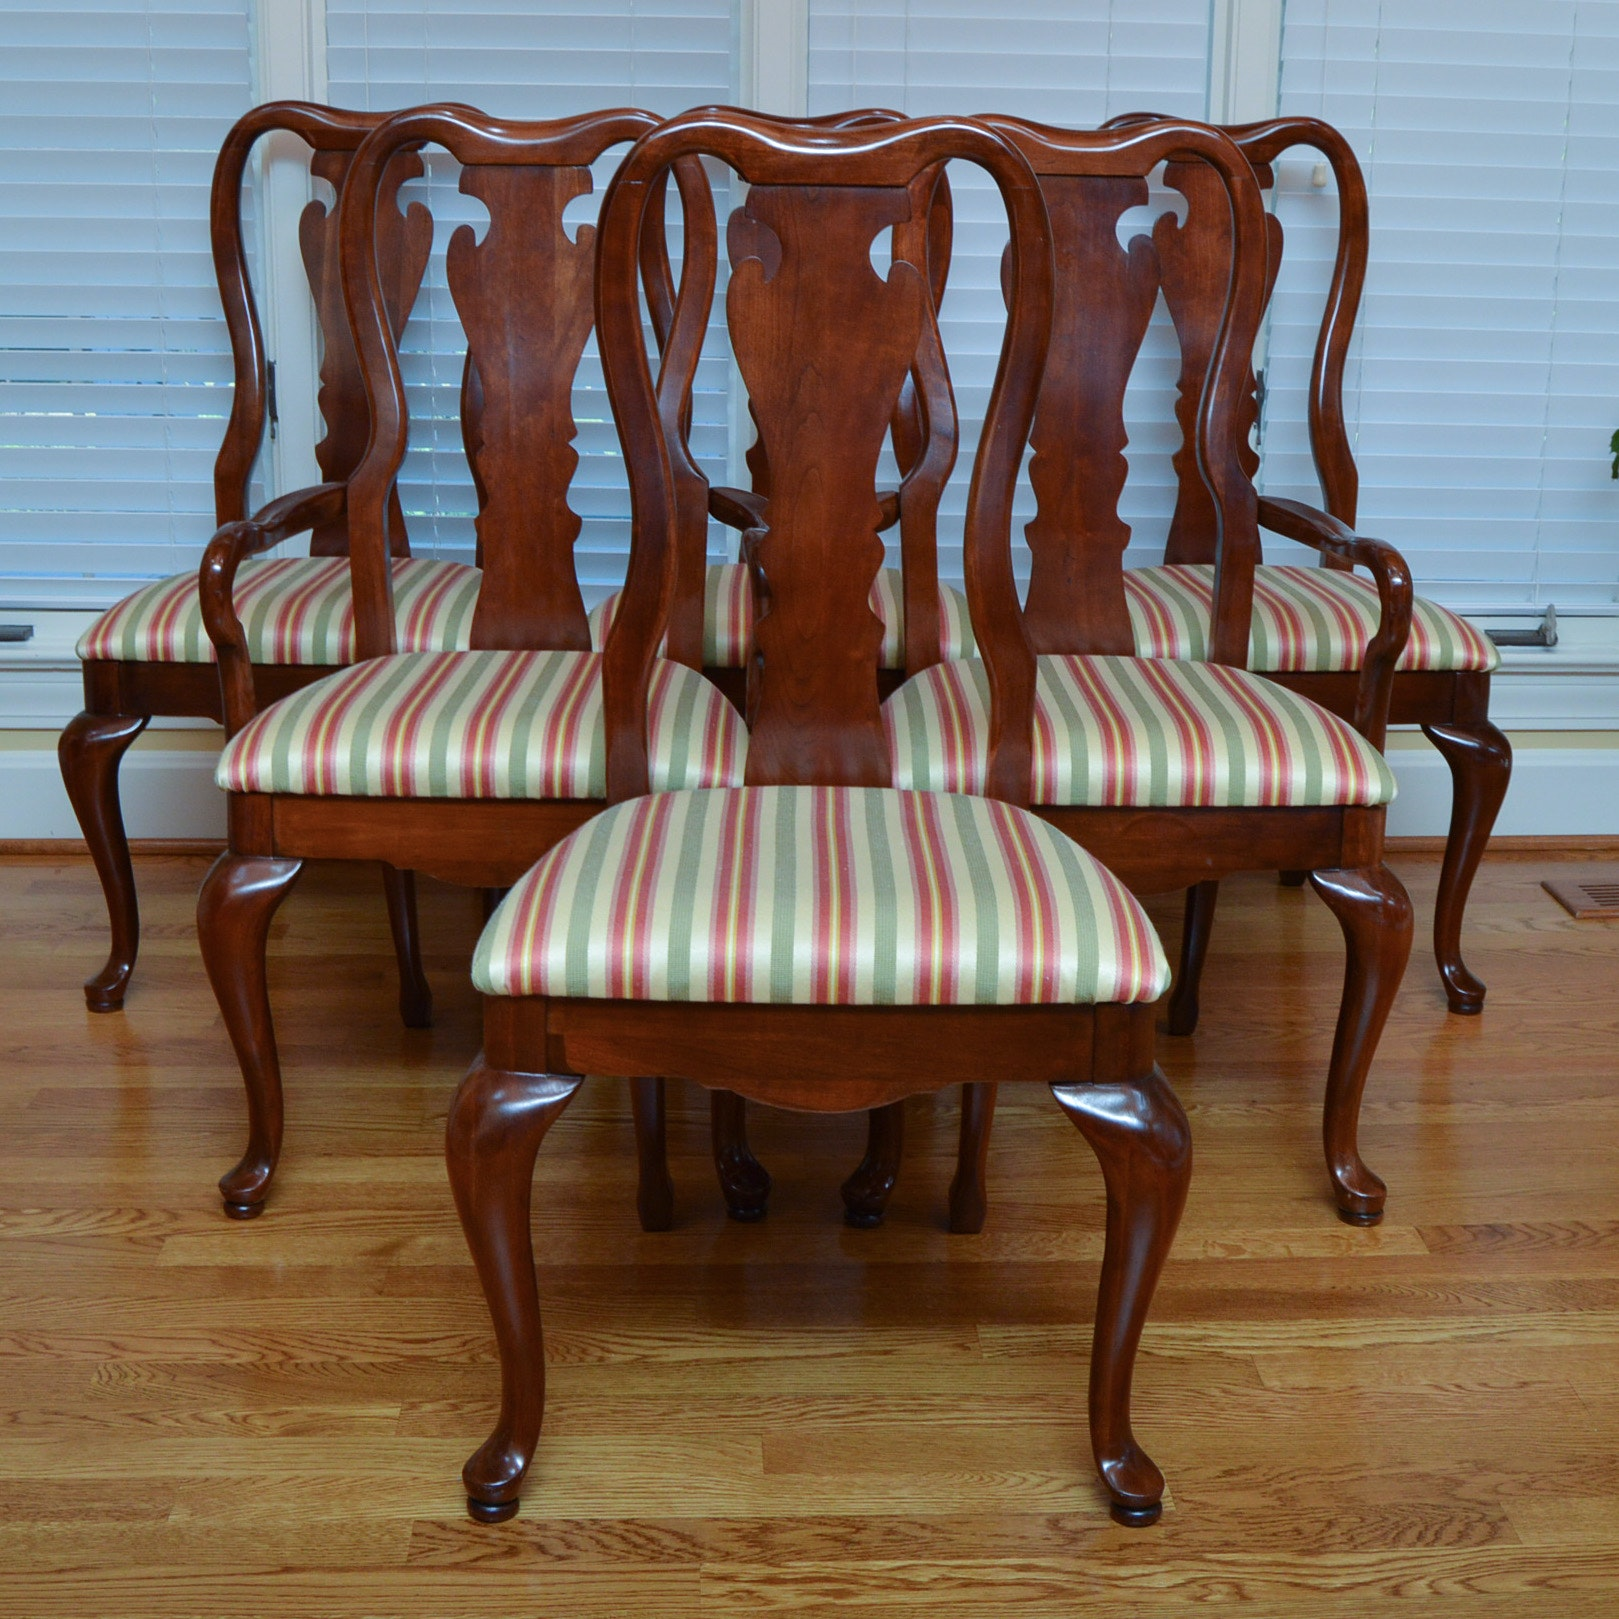 Thomasville Queen Anne Style Dining Chairs & Vintage Chairs Antique Chairs and Retro Chairs Auction in Art Home ...